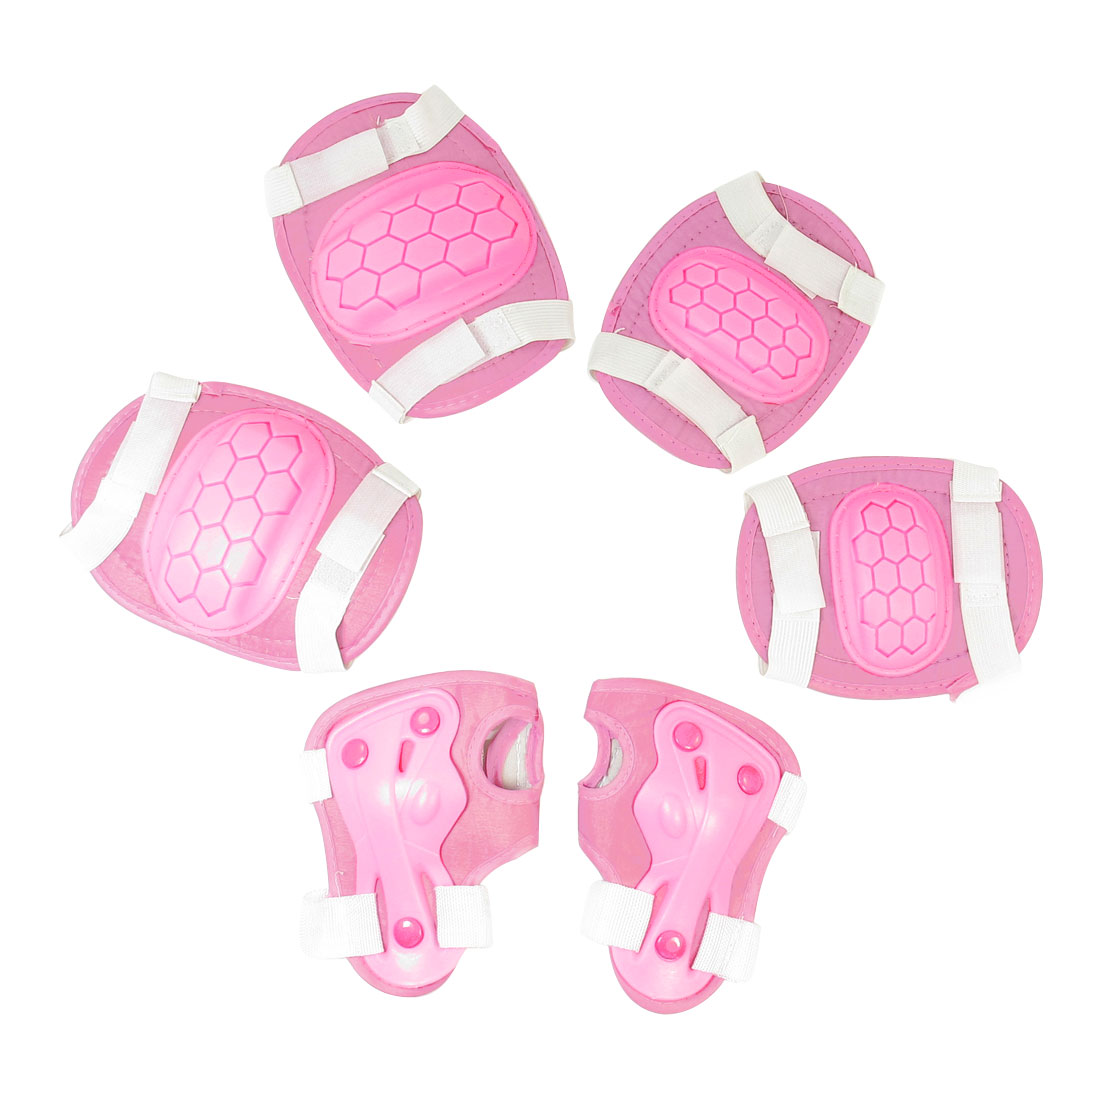 Skiting Pink Band Arch Design Palm Knee Elbow Support Protector for Children